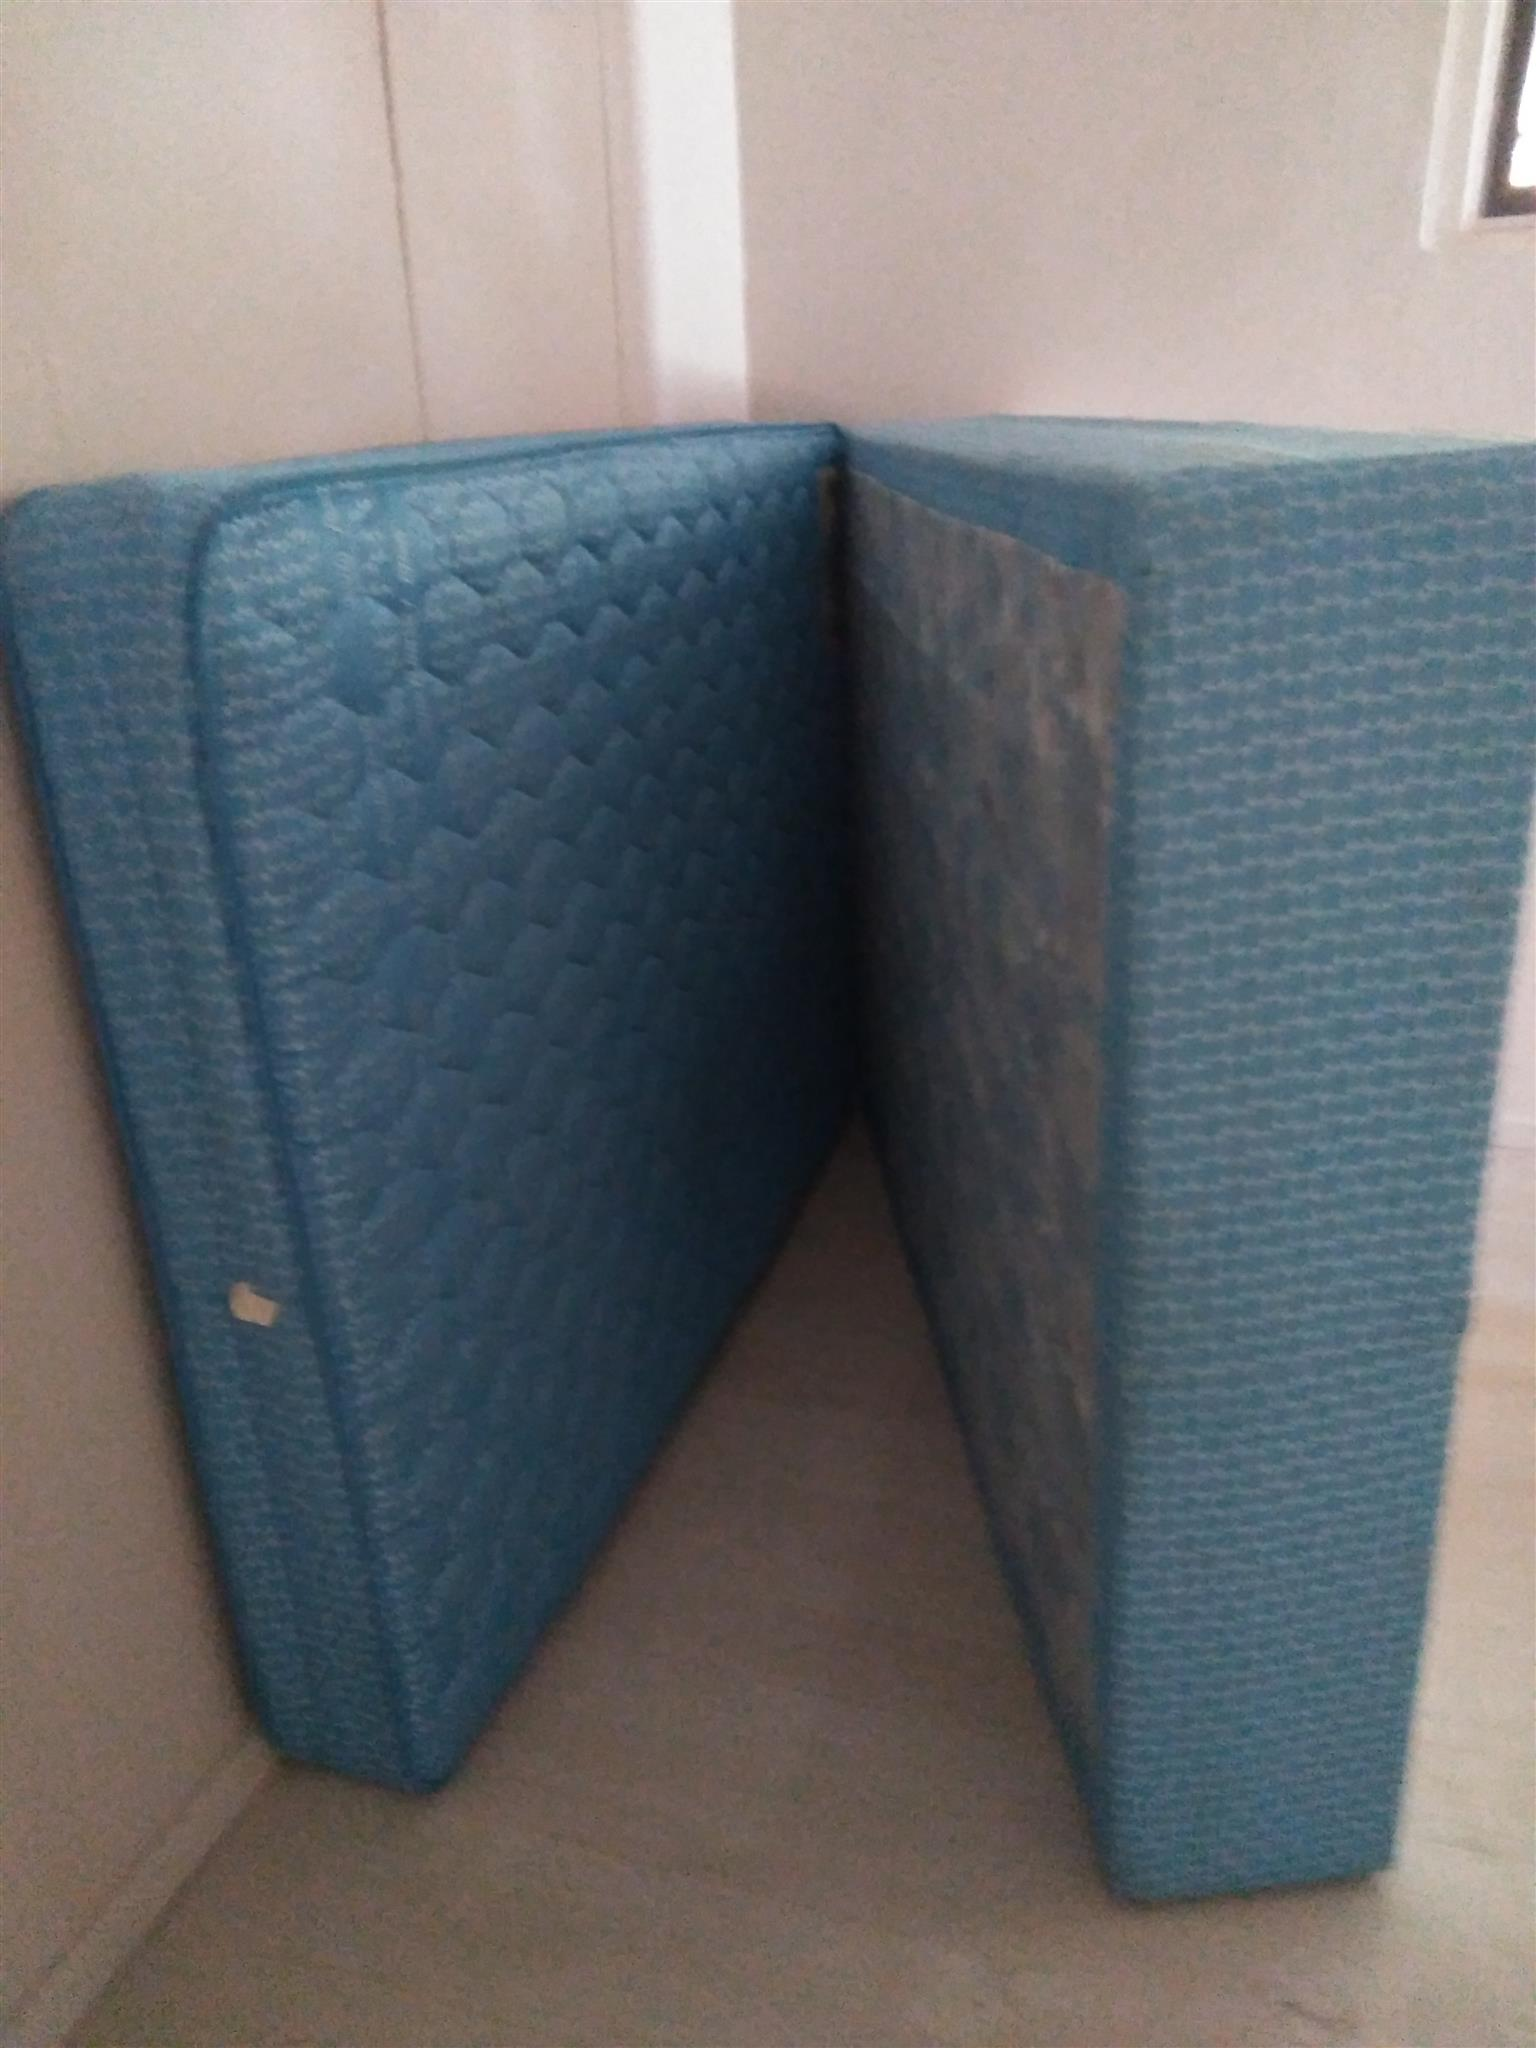 3/4 bed and single bed and double bed